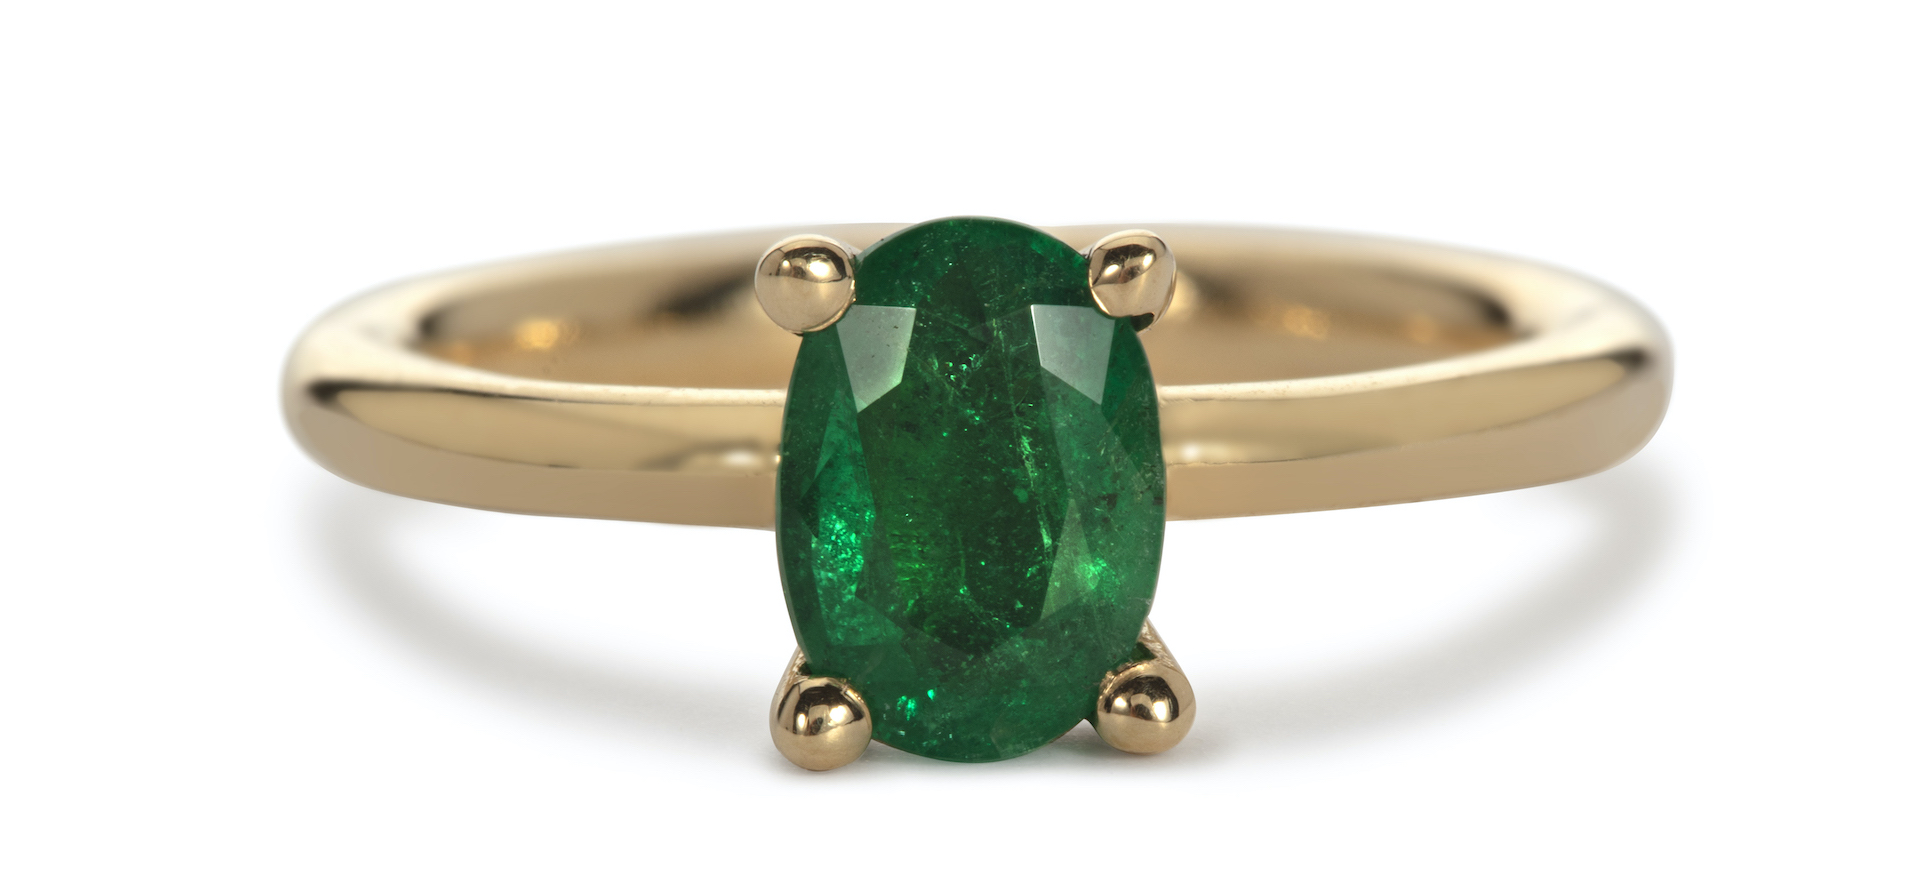 Lorna's Oval Emerald Ring